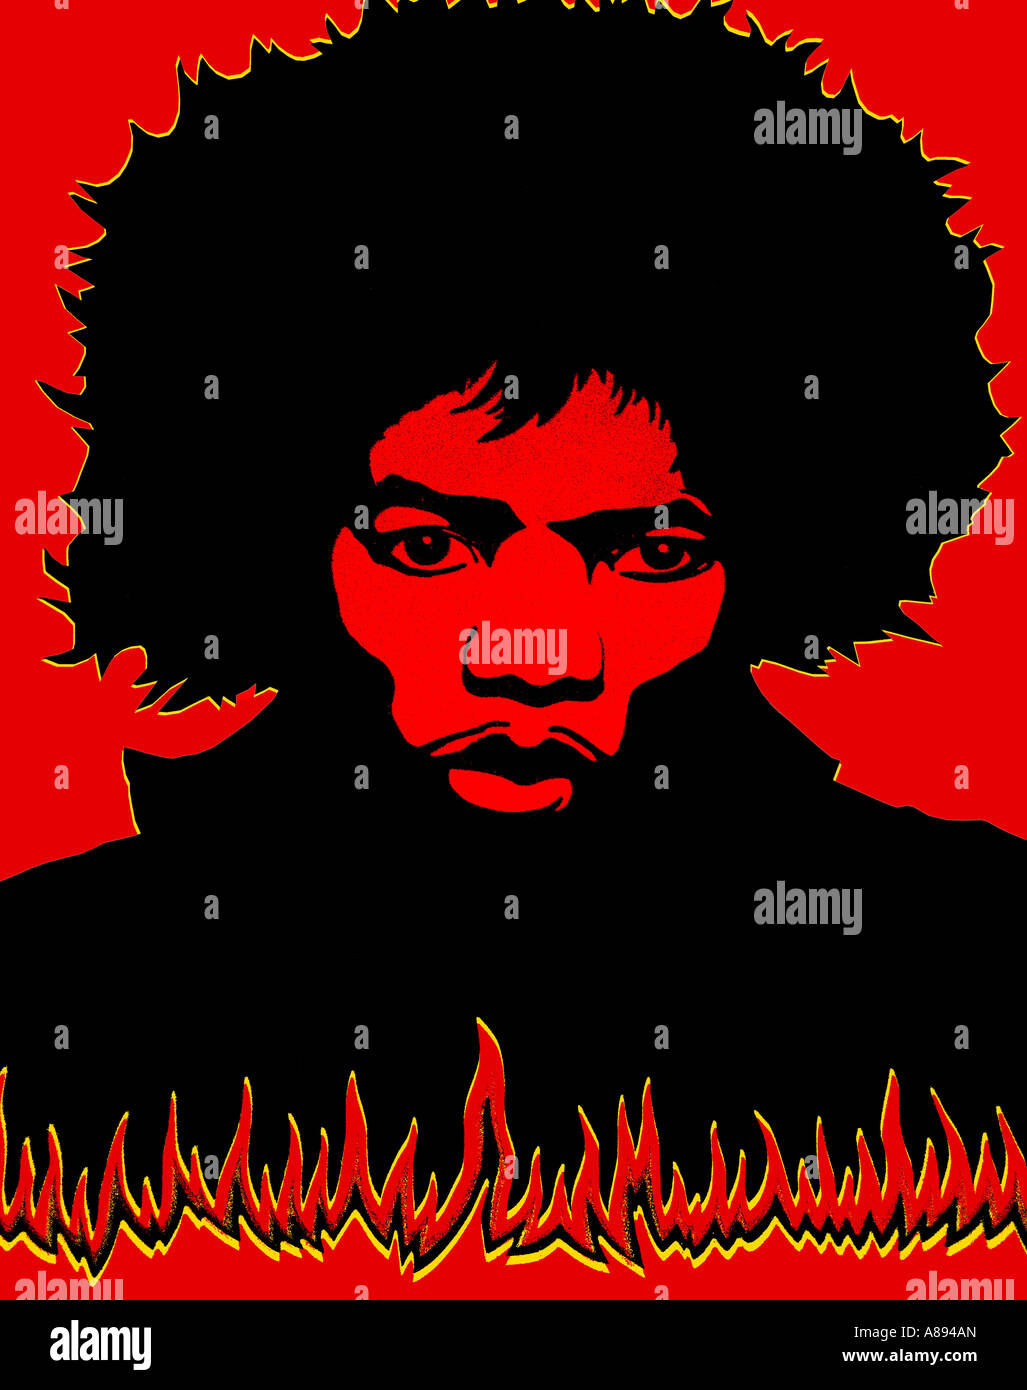 Jimi Hendrix Poster From The 1960s